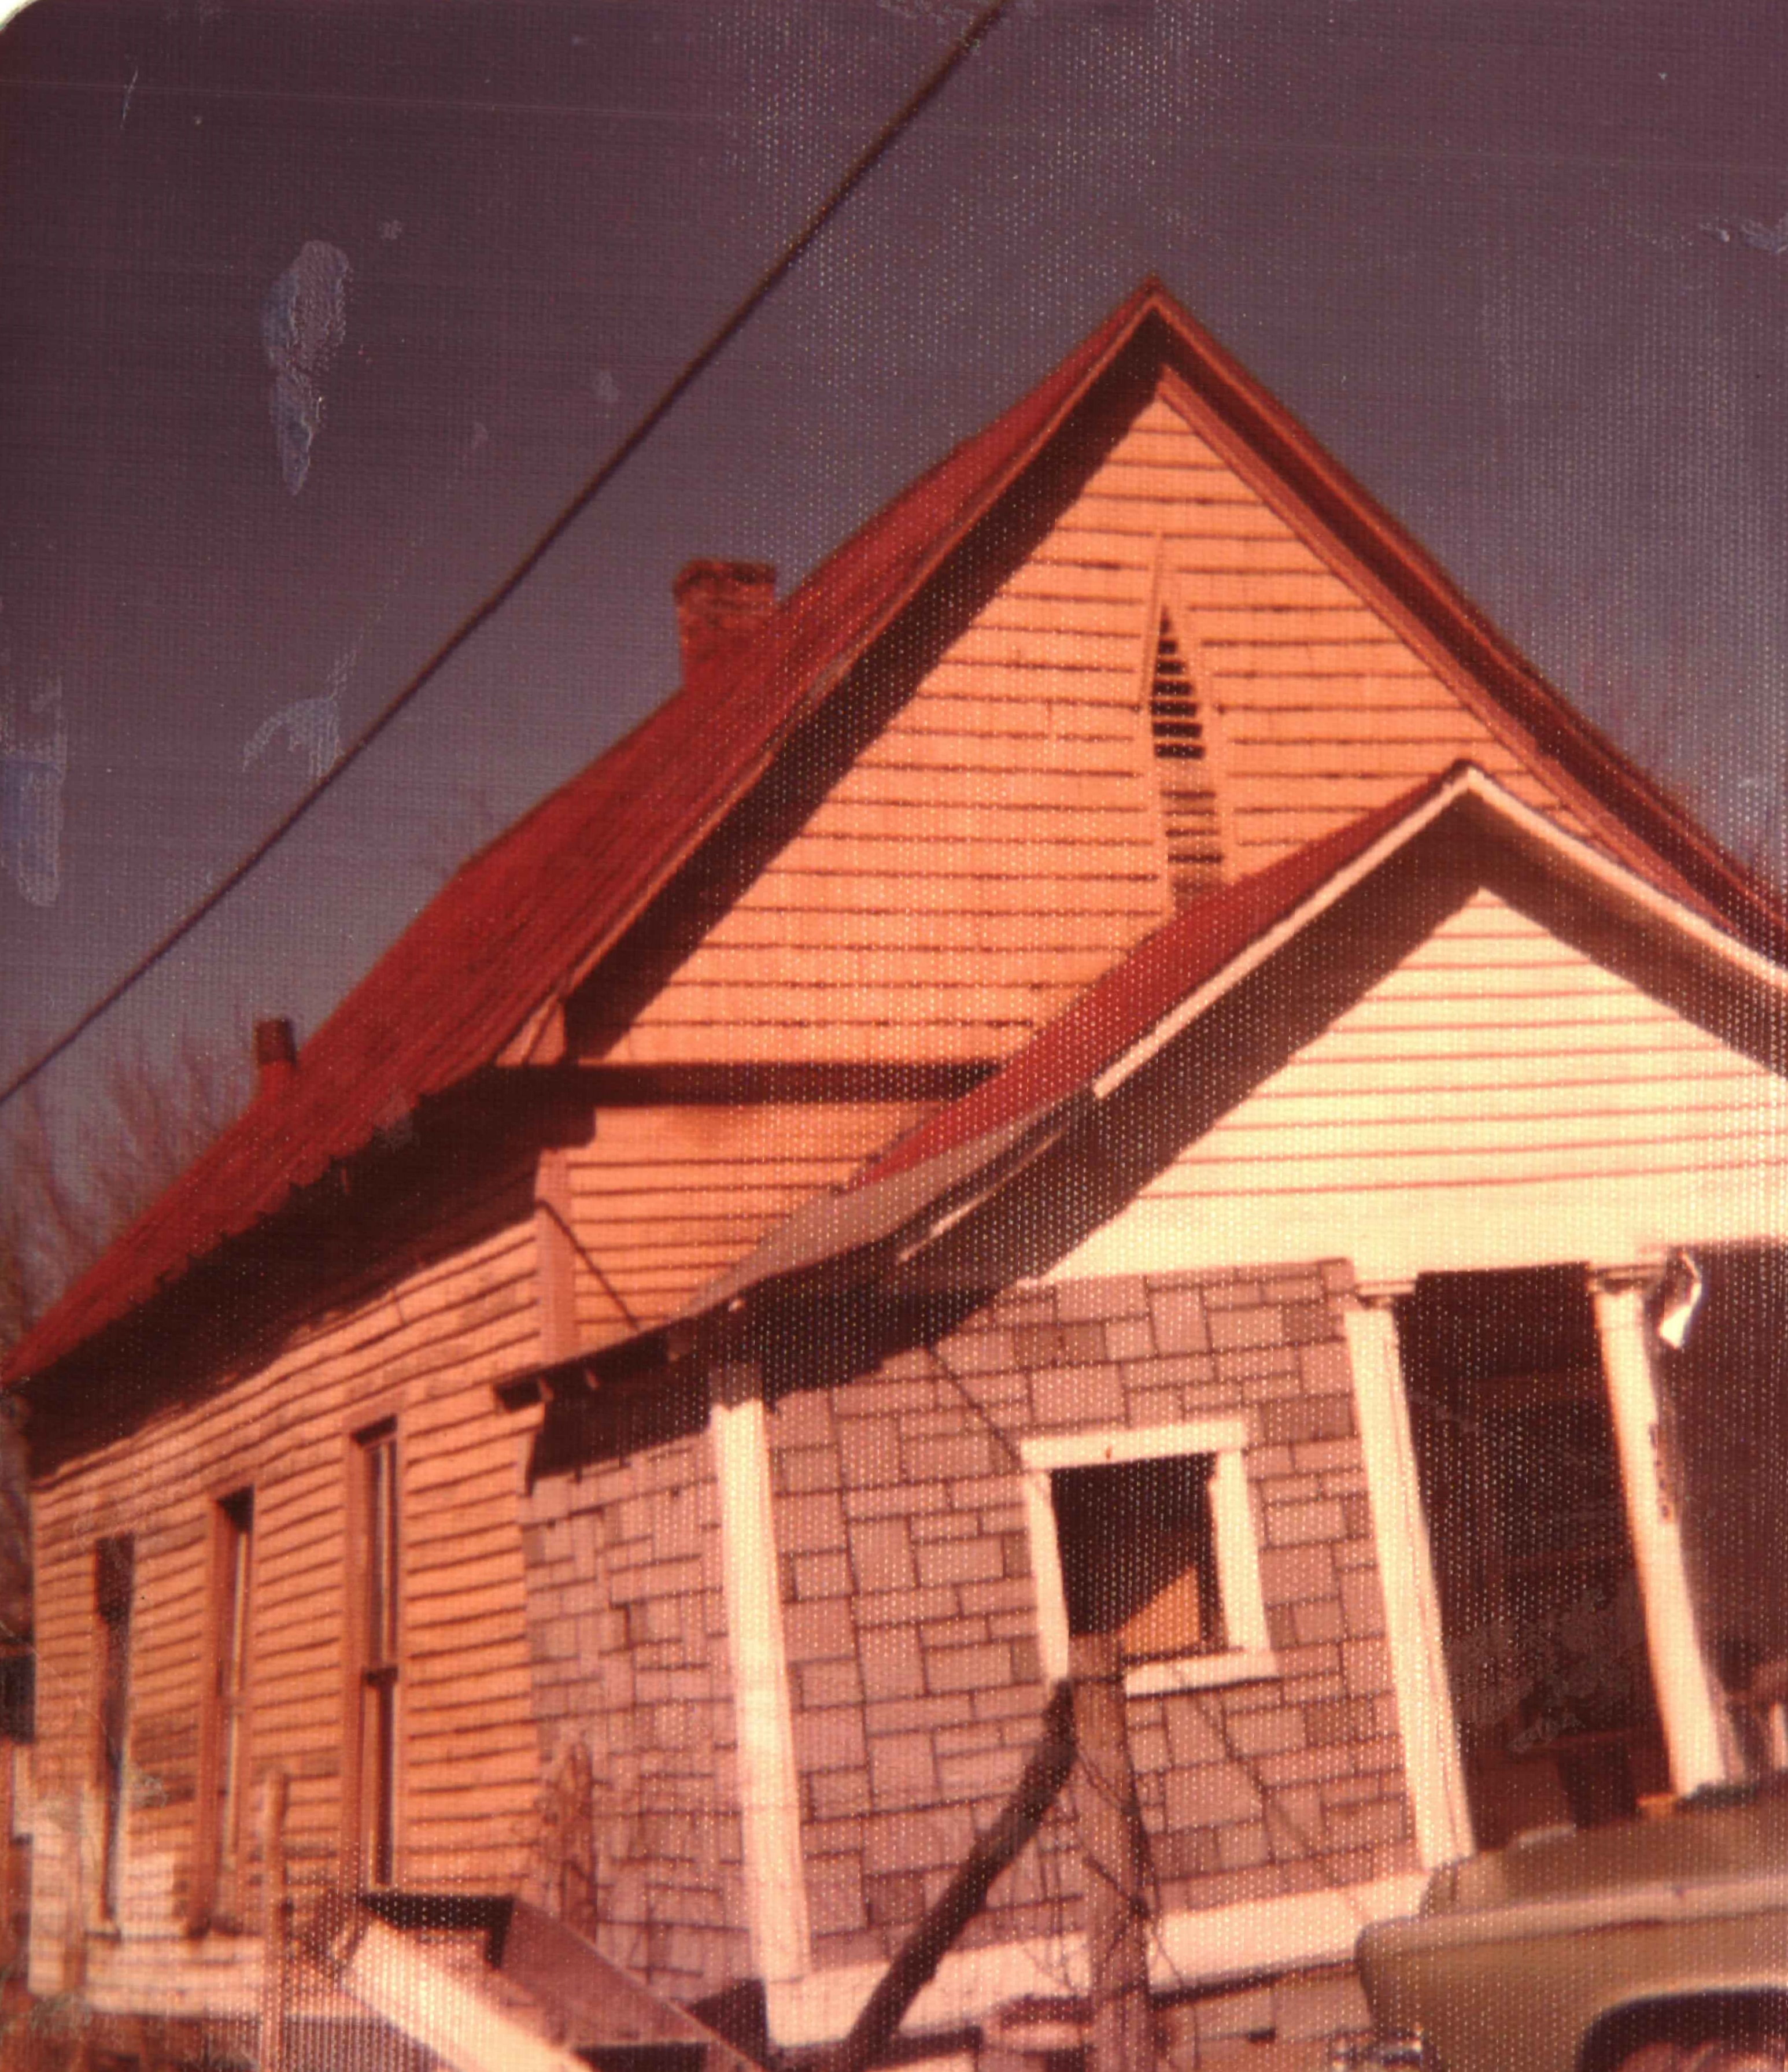 Another picture of the schoolhouse, with the porch enclosed, likely shortly before its destruction. Image courtesy of the Ceredo Historical Society Museum.